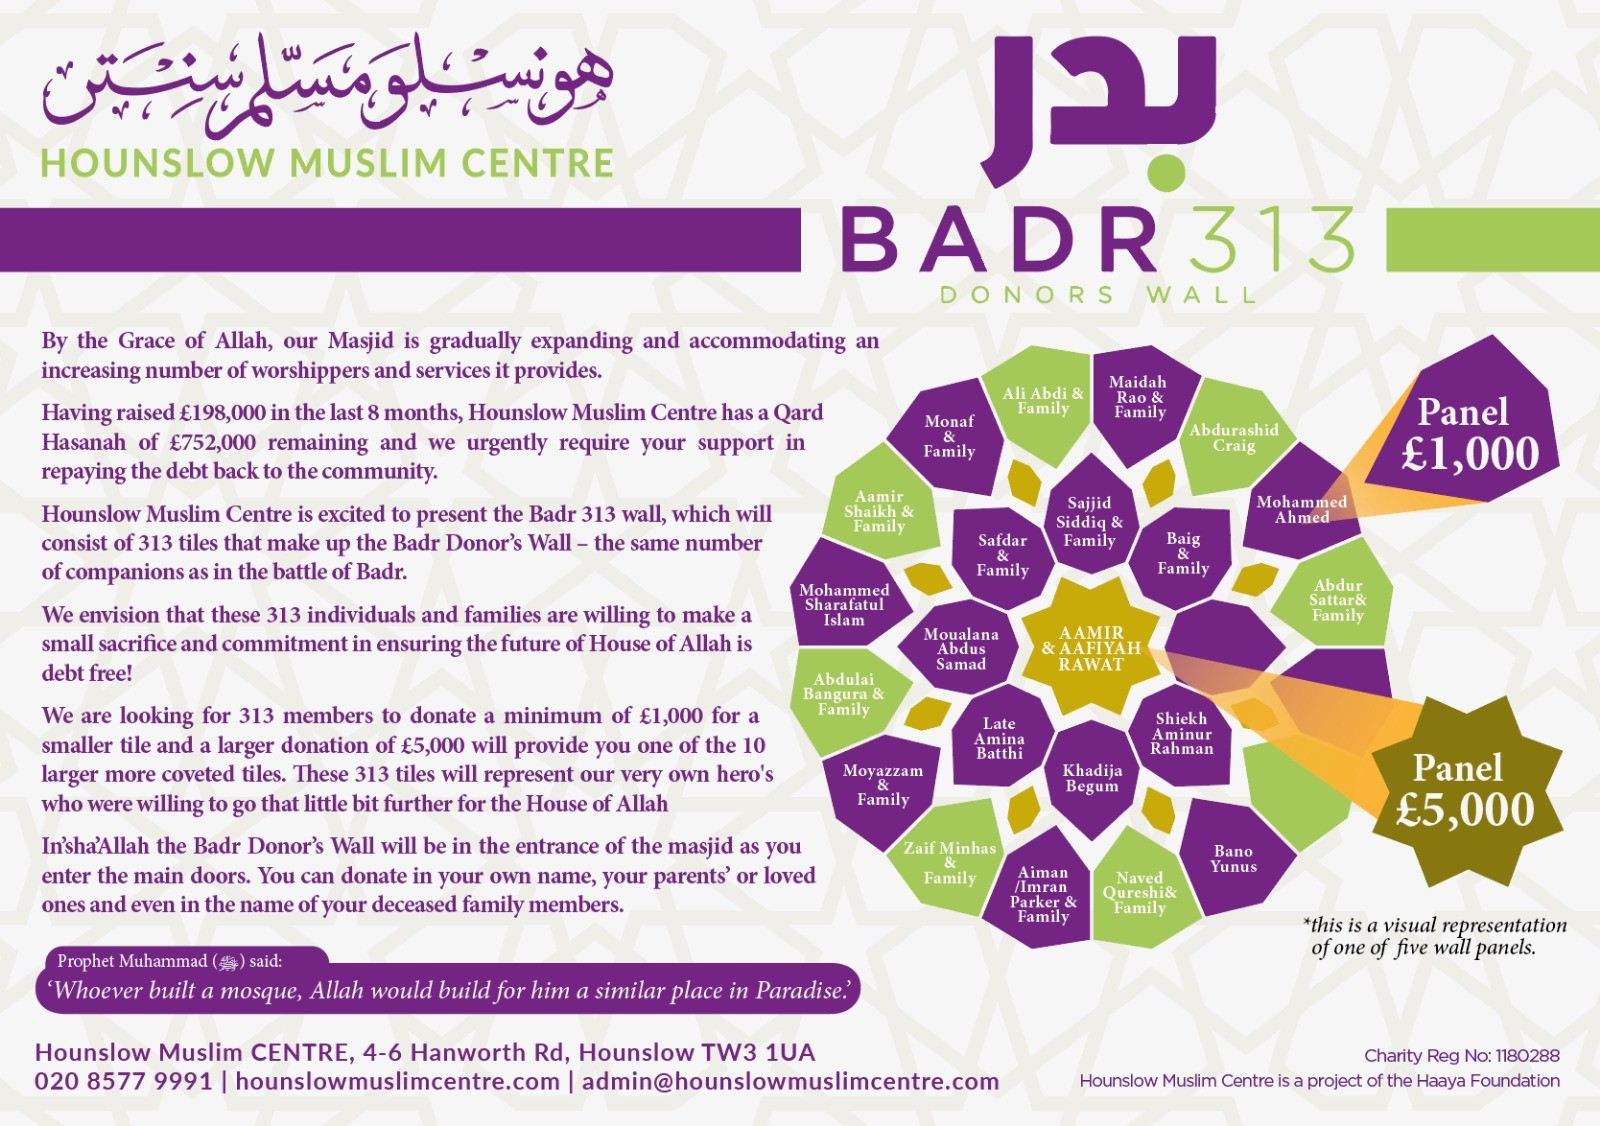 Badr 313 - Donors Wall